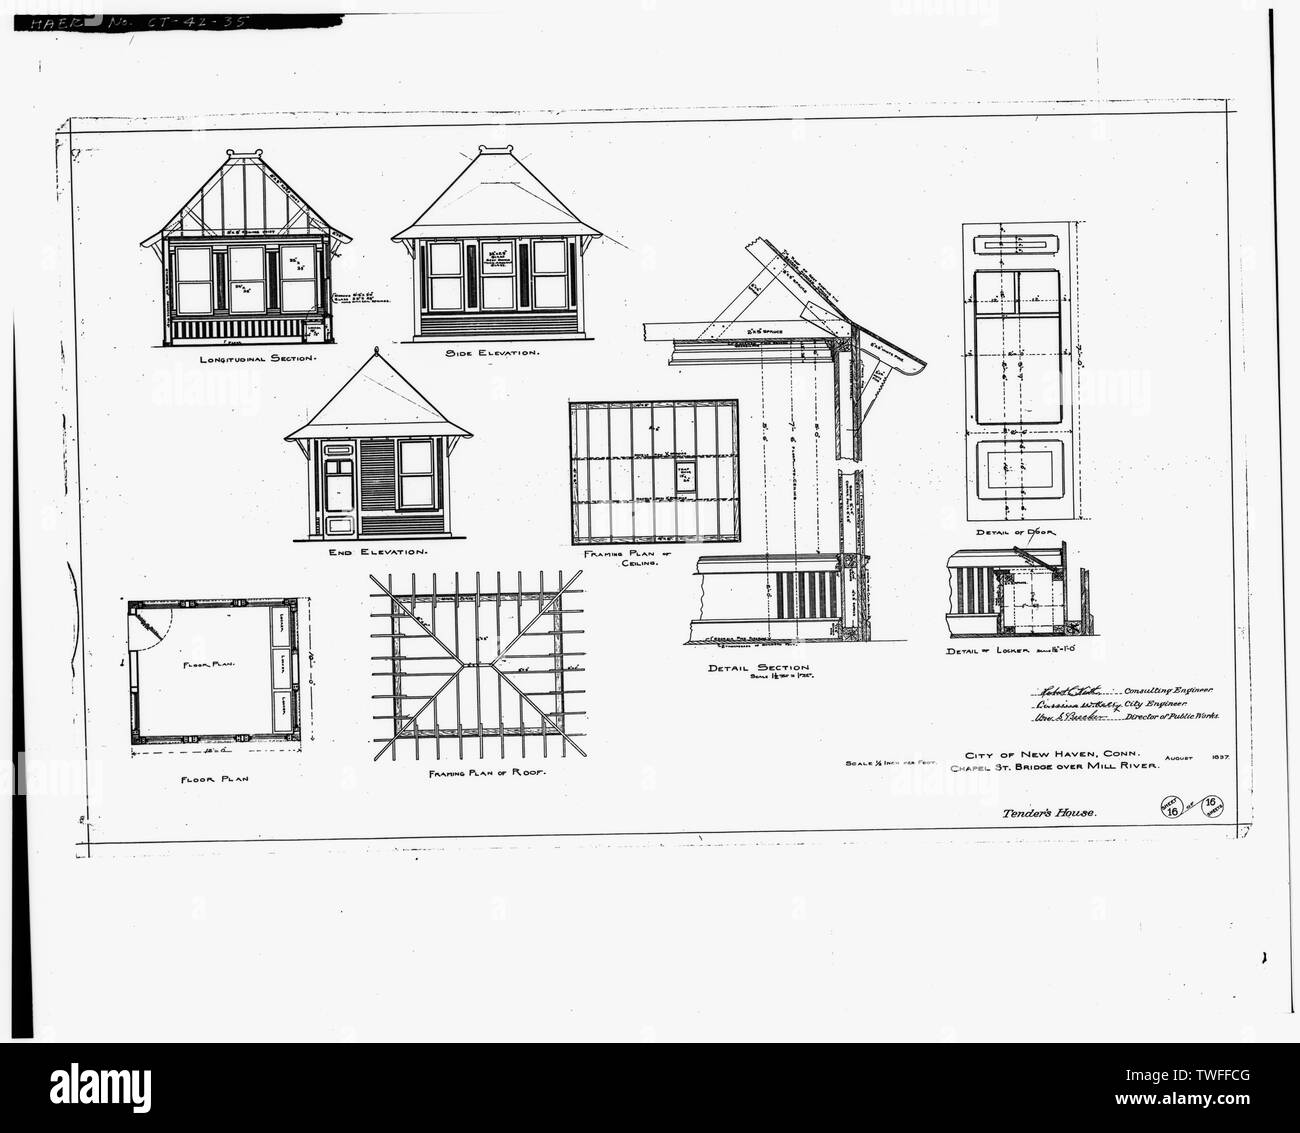 PLAN SHEET - TENDER HOUSE (1897) - Chapel Street Swing Bridge, Spanning Mill River on Chapel Street, New Haven, New Haven County, CT - Stock Image